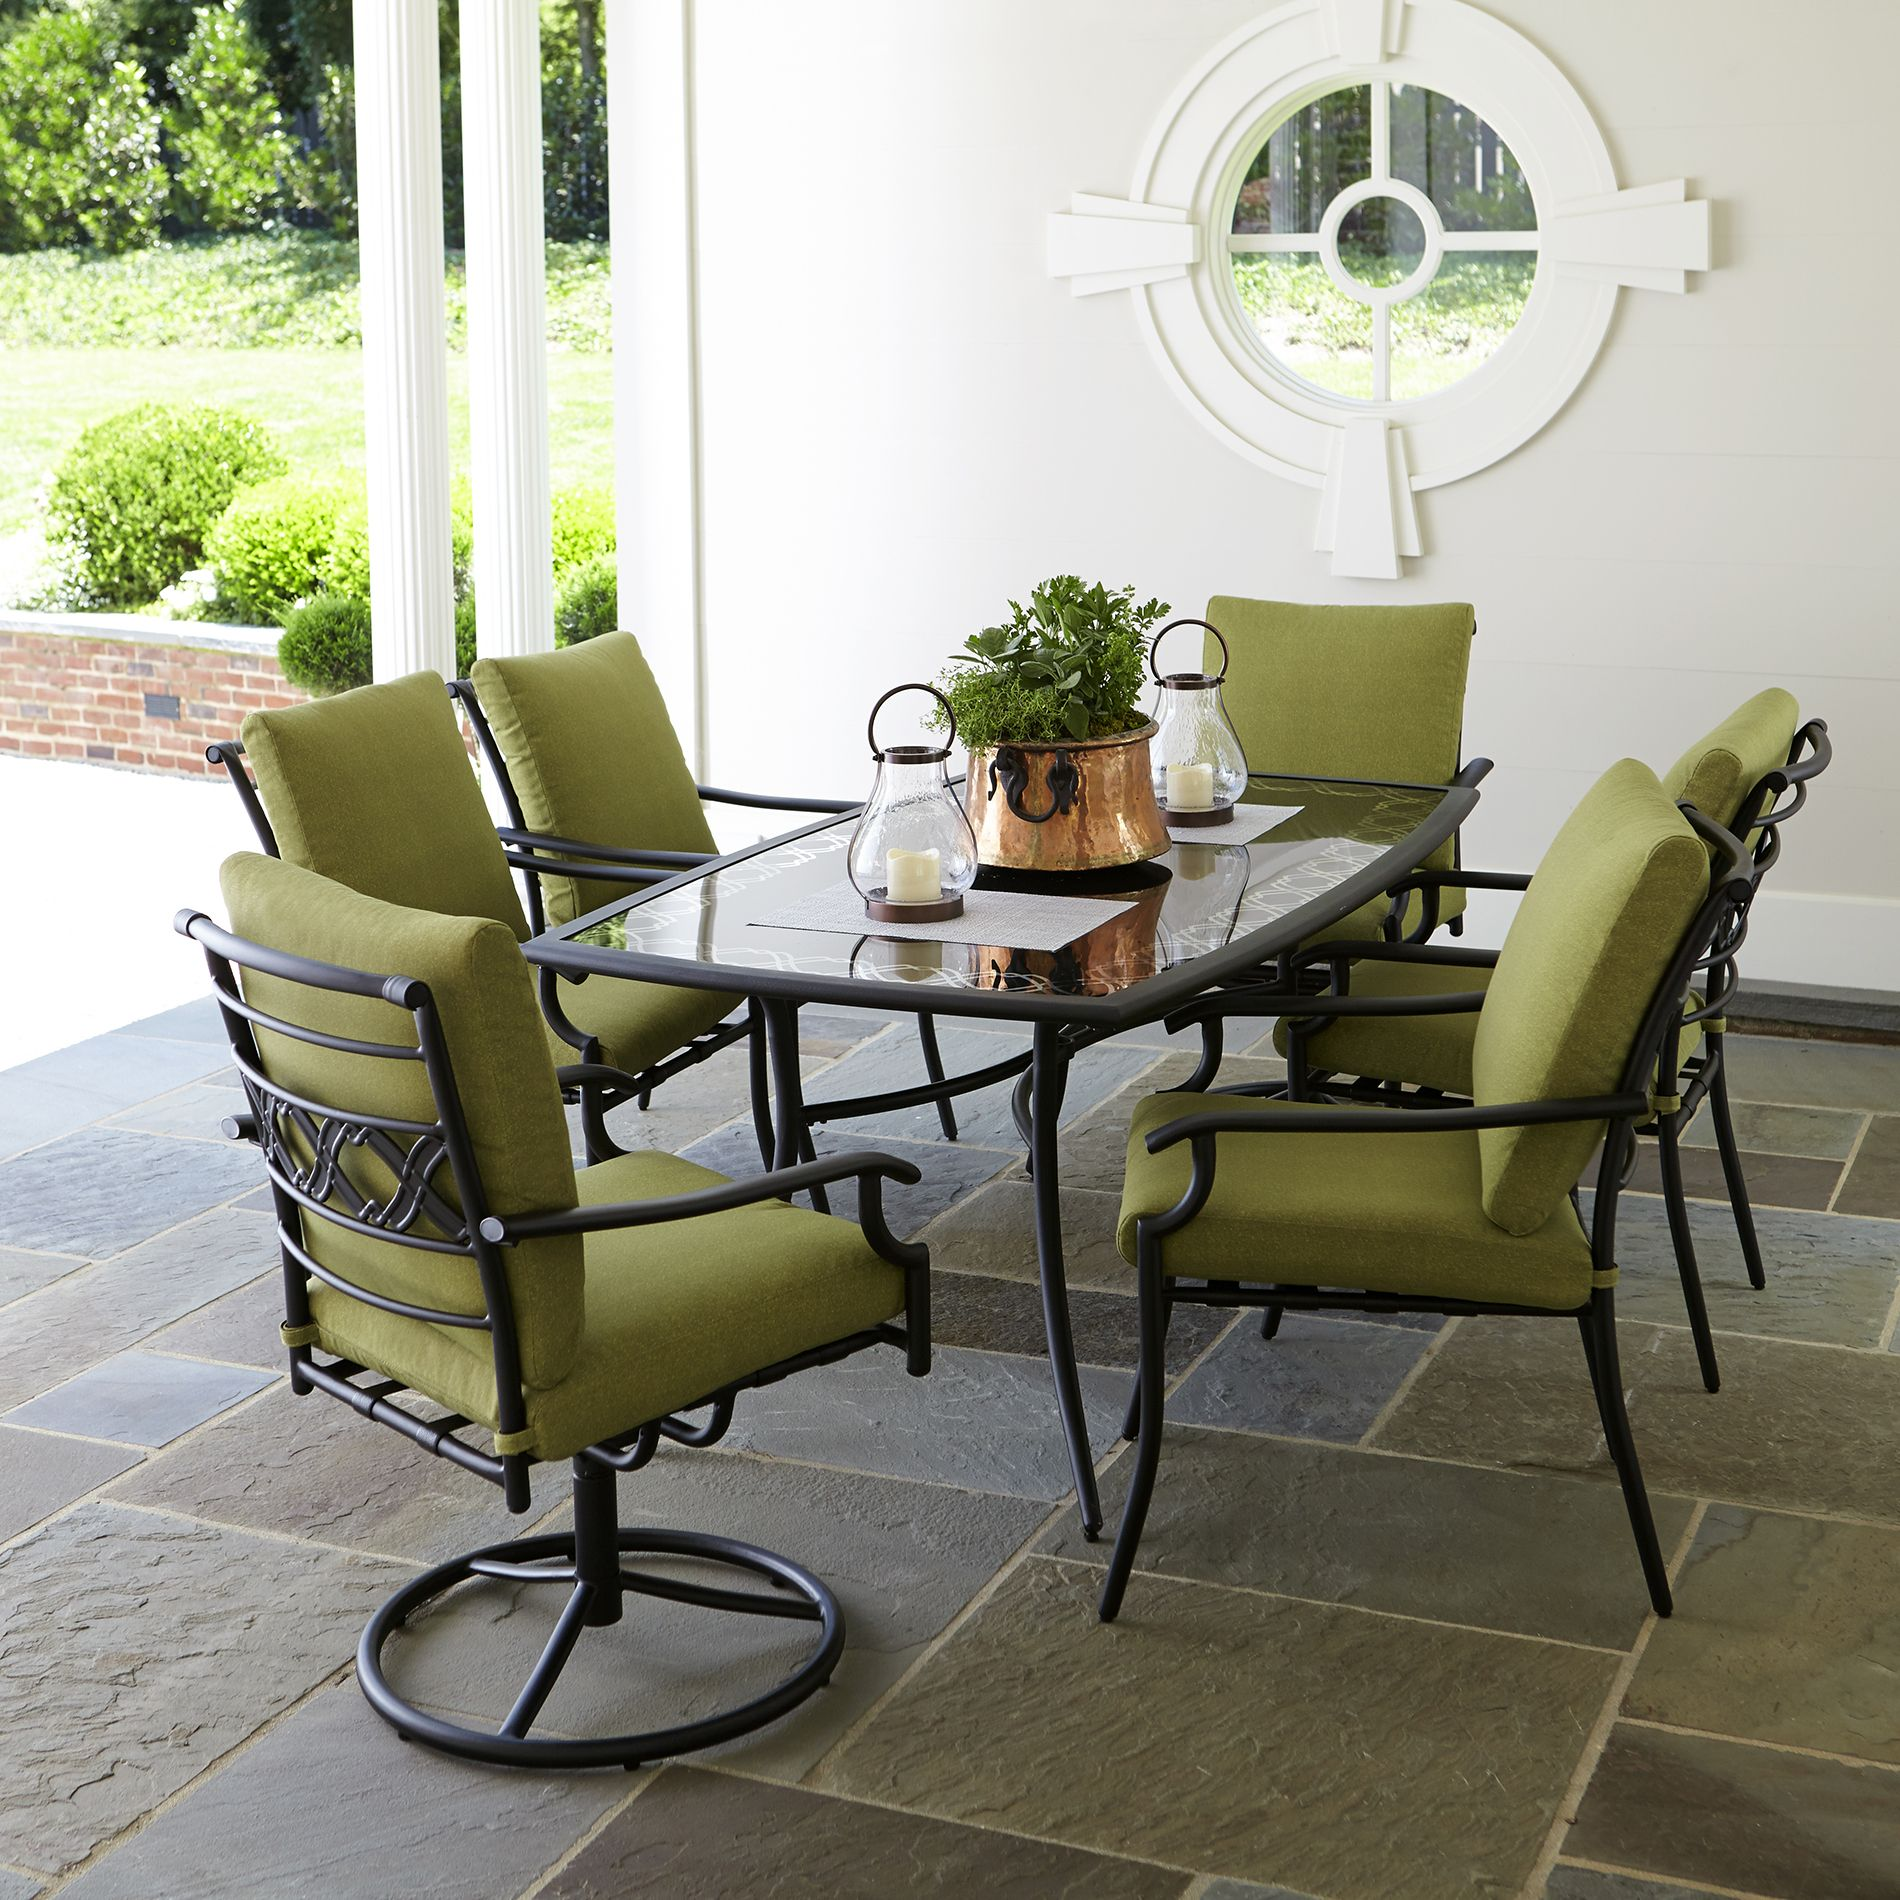 celebrate in style with the garden oasis rockford 7-piece outdoor